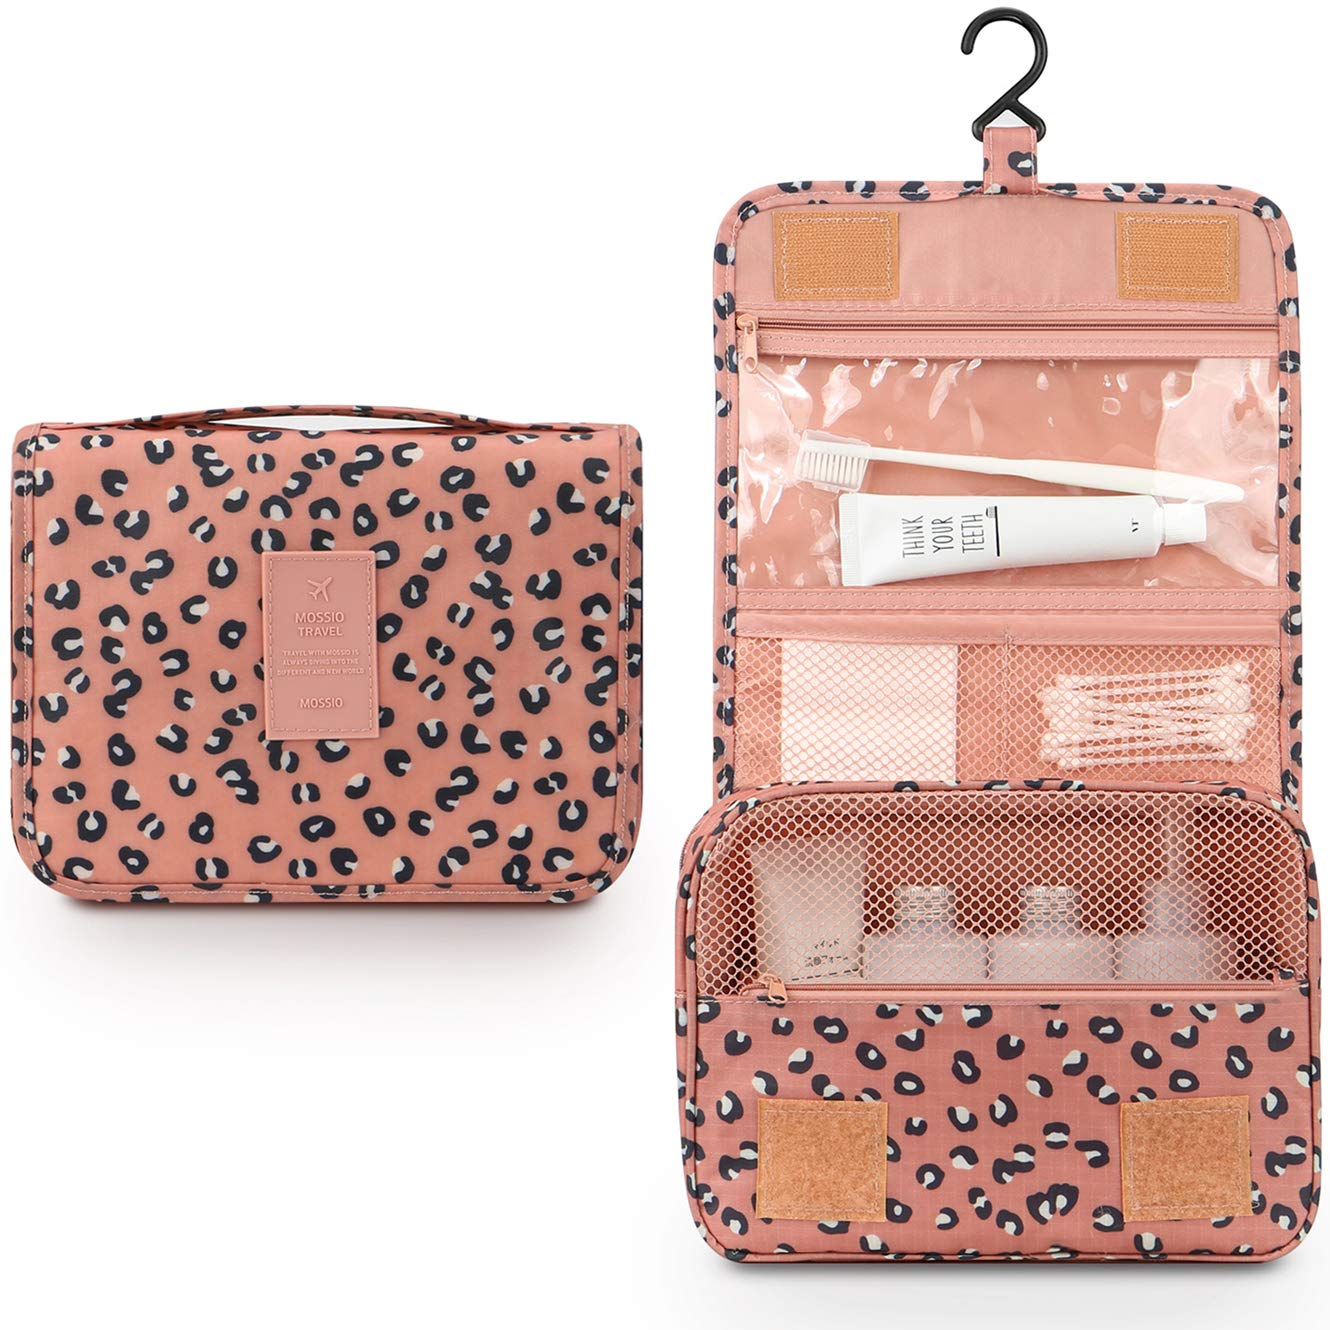 Toiletry Bag for Women,Mossio Waterproof Big Makeup Case with Large Compartment Pink Leopard by Mossio